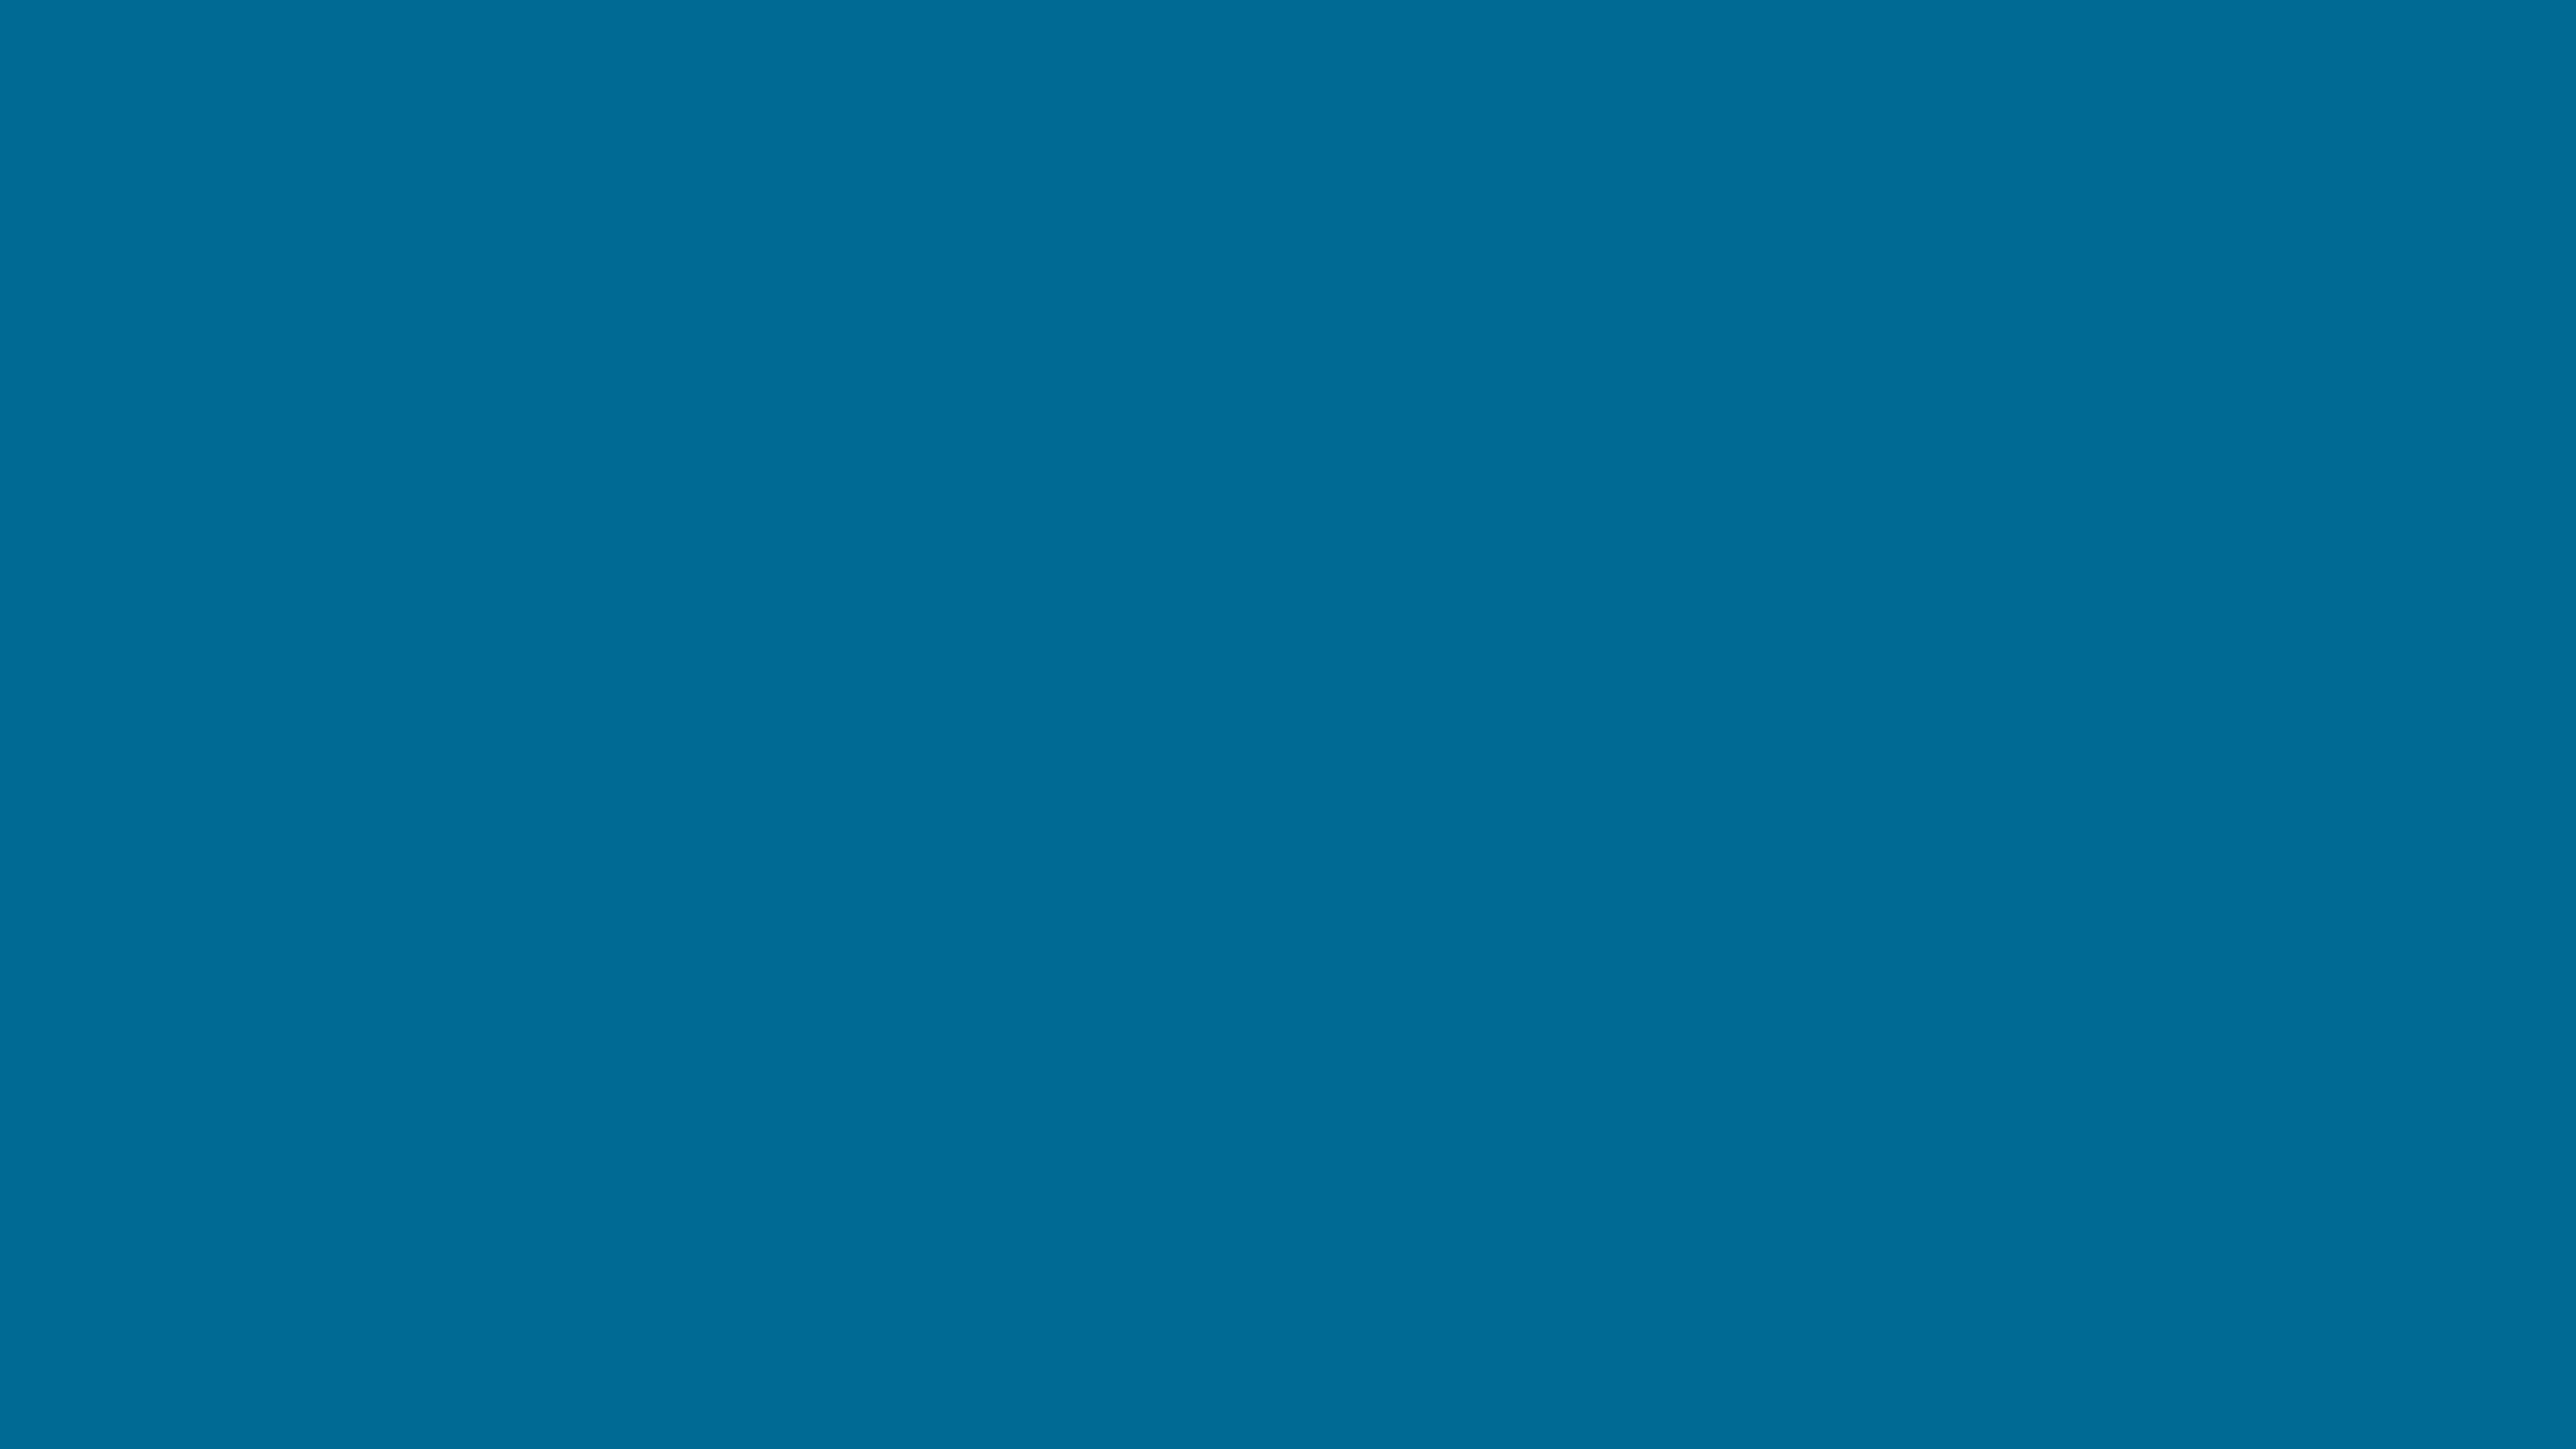 7680x4320 Sea Blue Solid Color Background